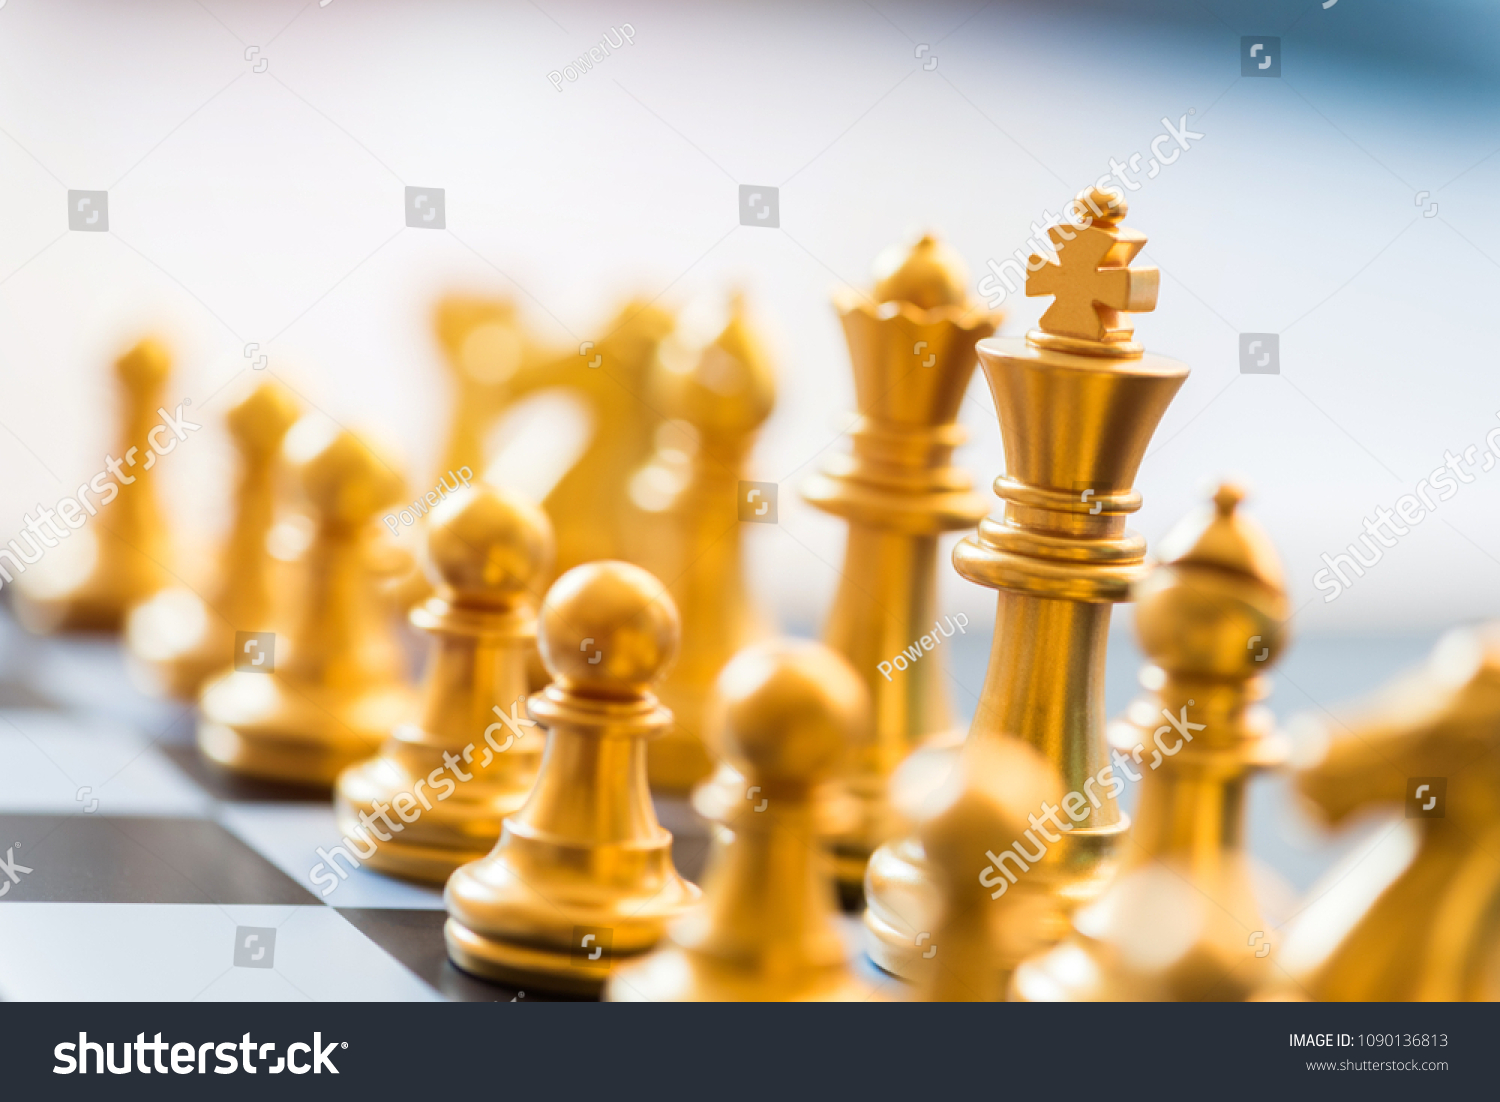 Gold Chess Pieces Gold Chess Pieces On Chessboard Business Stock Photo Edit Now